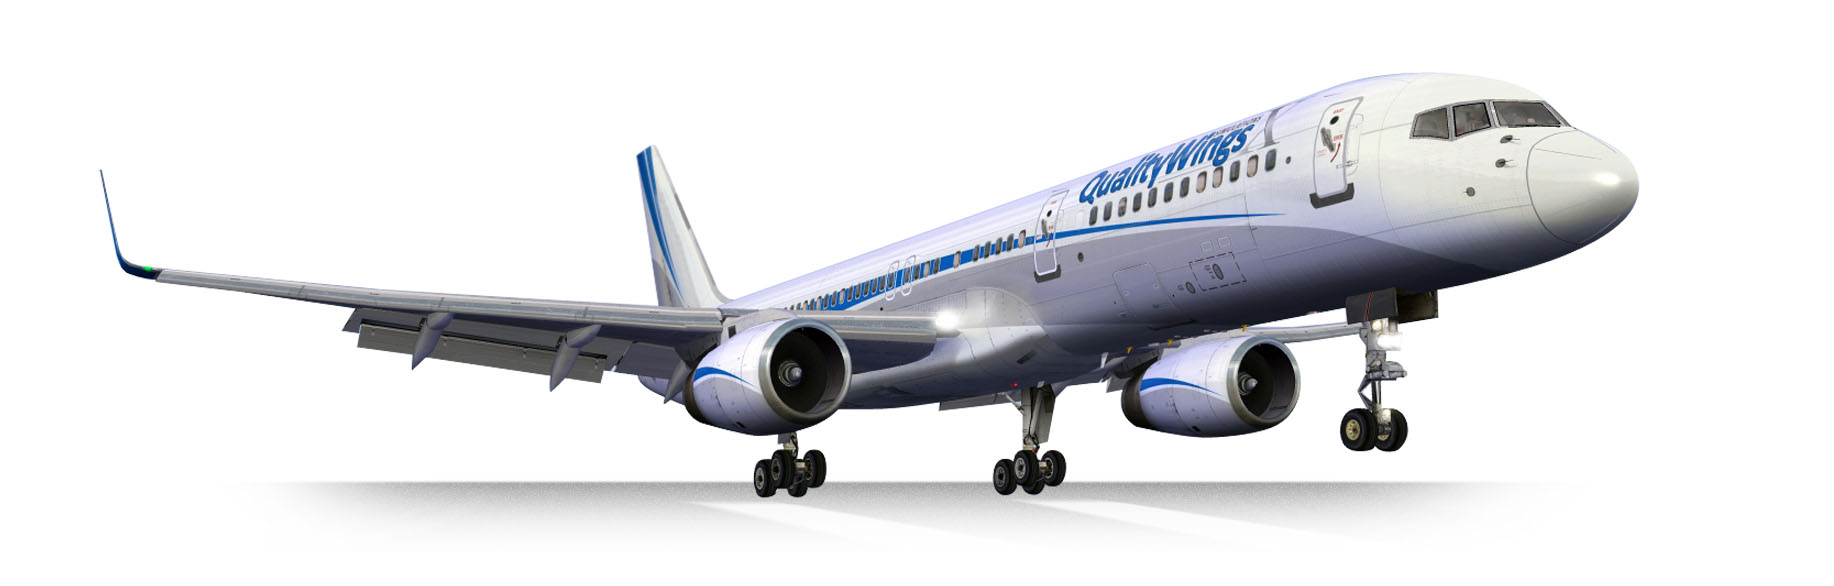 FSX Qualitywings 757 .EXE with serial